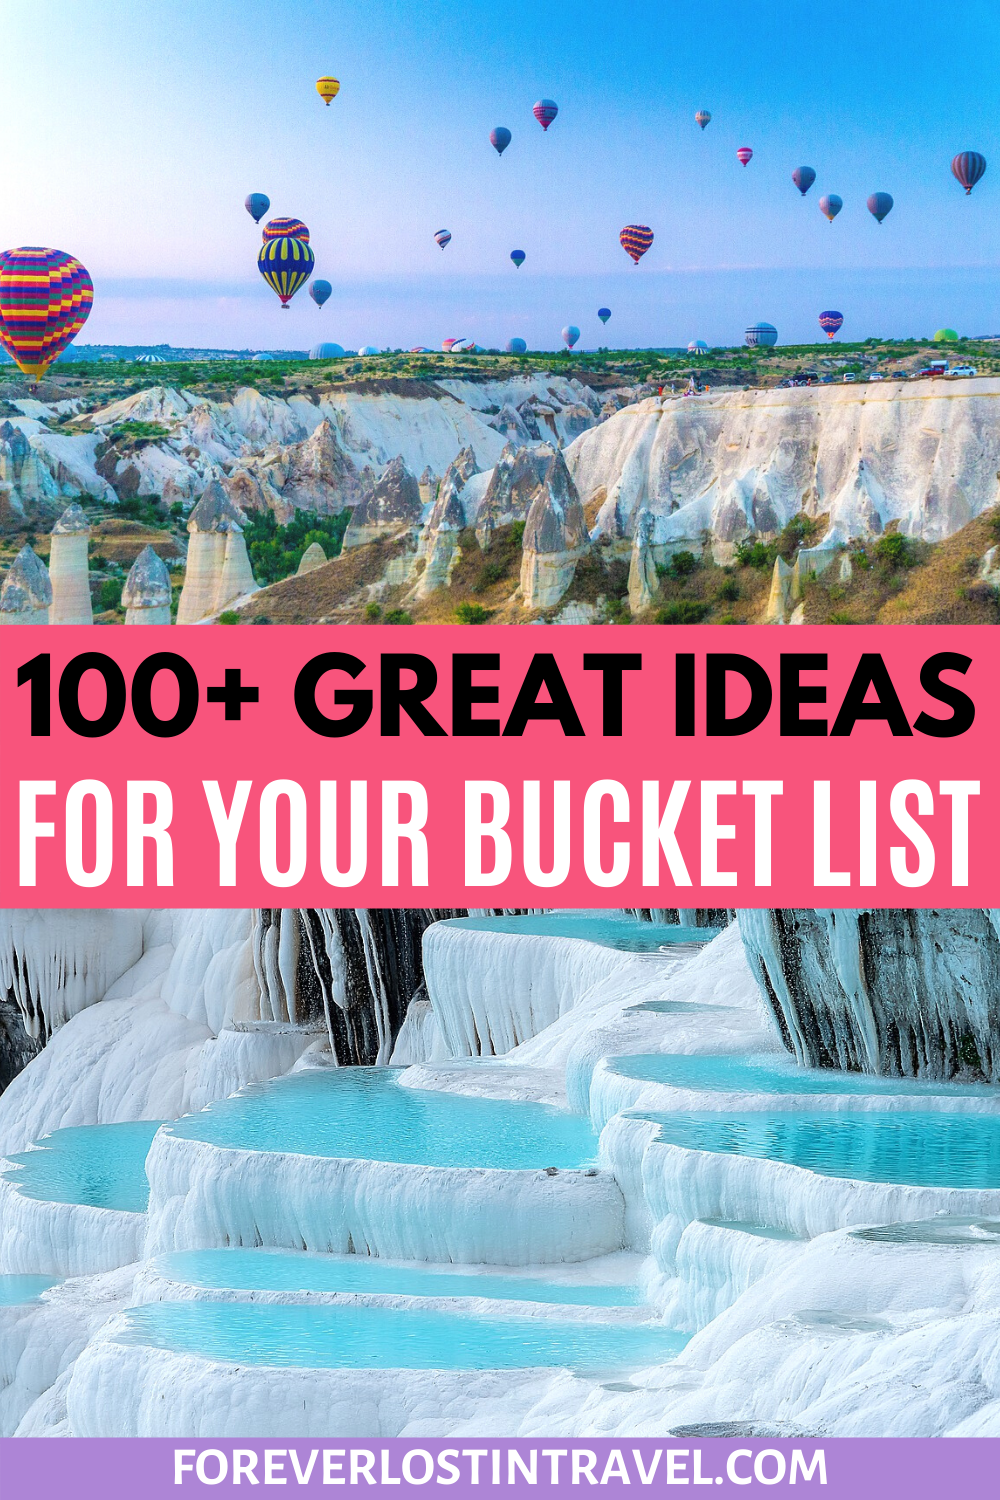 Plan your next dream trip with over 100 amazing ideas of bucket list destinations from all over the world. 2021 travel never looked so good #foreverlostintravel #bucketlist #travel #dreamtrip #vacationplanning #tripplanning #travelinspiration